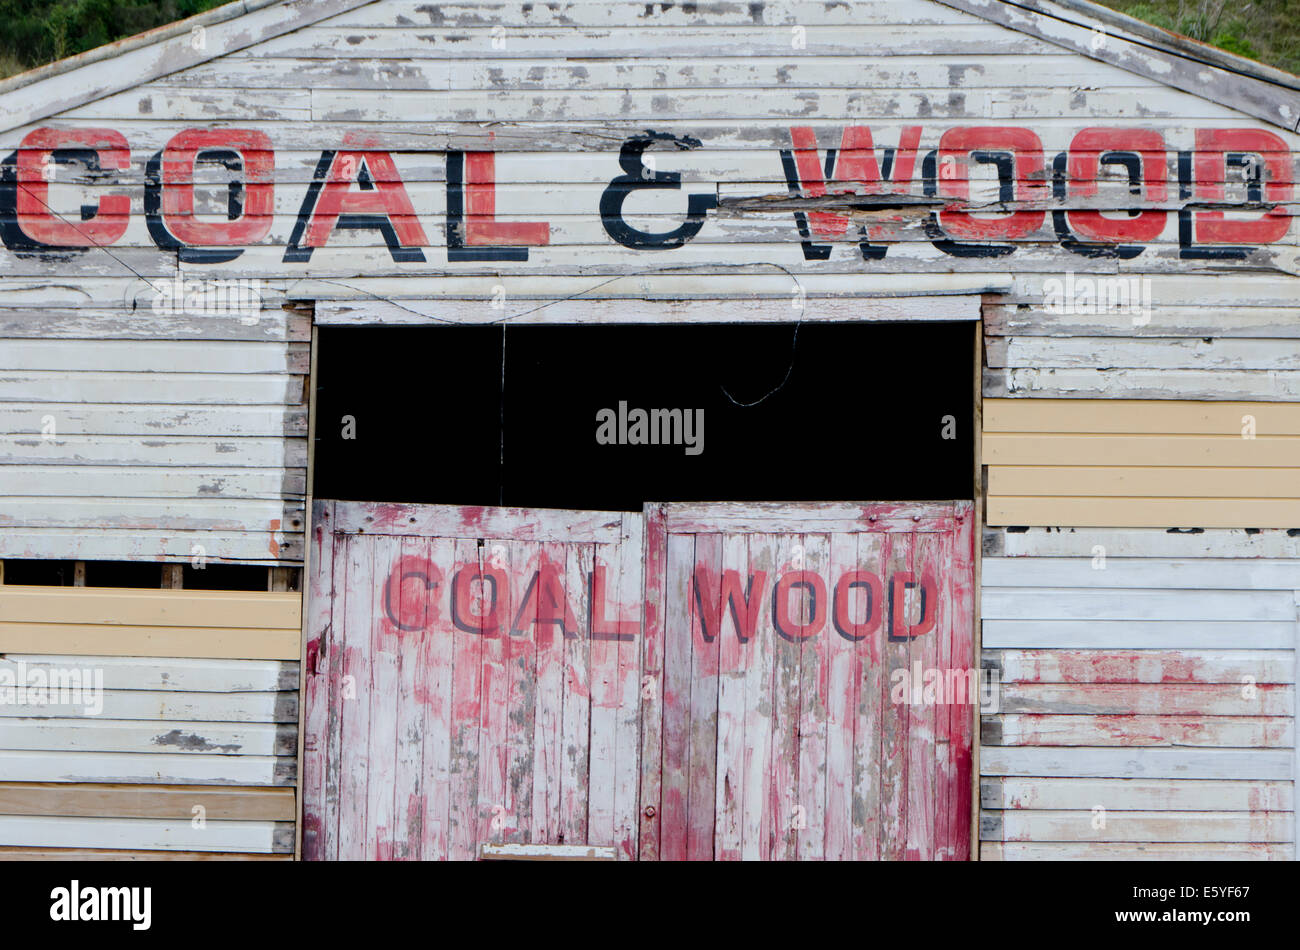 Coal and Wood depot, Mangaweka, Rangitiki, North Island, New Zealand - Stock Image